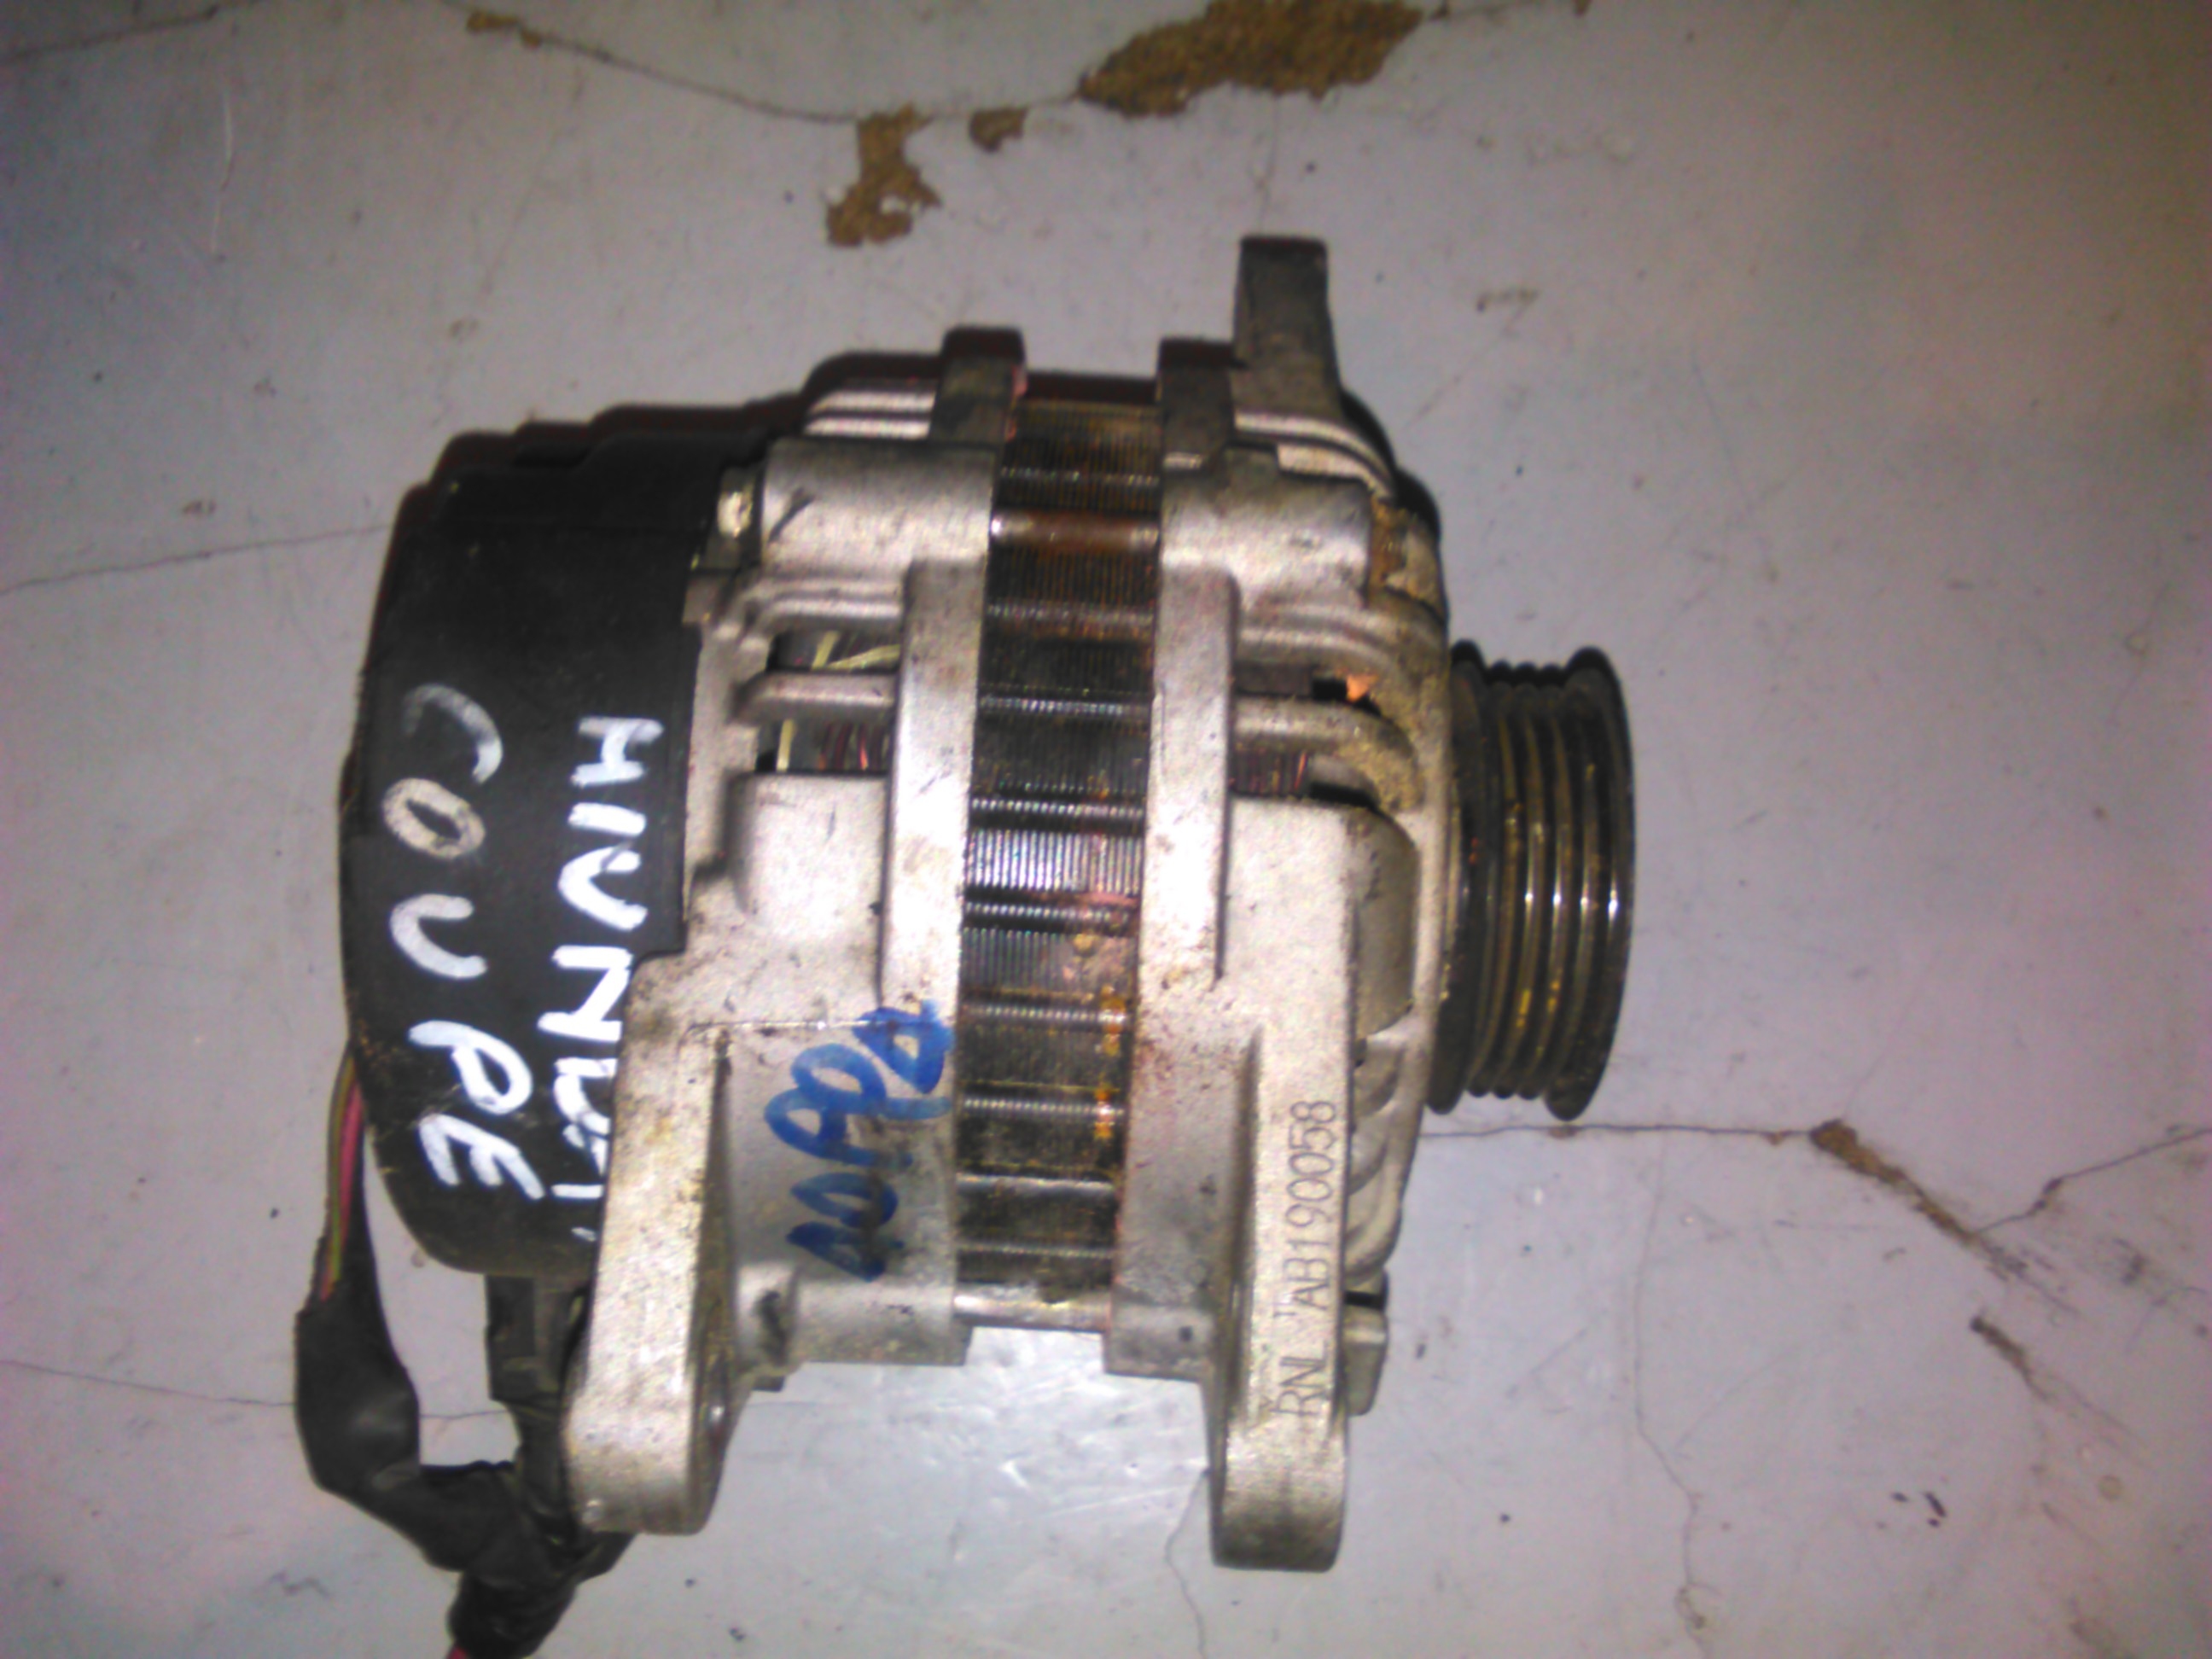 Alternator Hyundai Coupe, Elantra, Accent 1.6, 1.8 cod AB190058